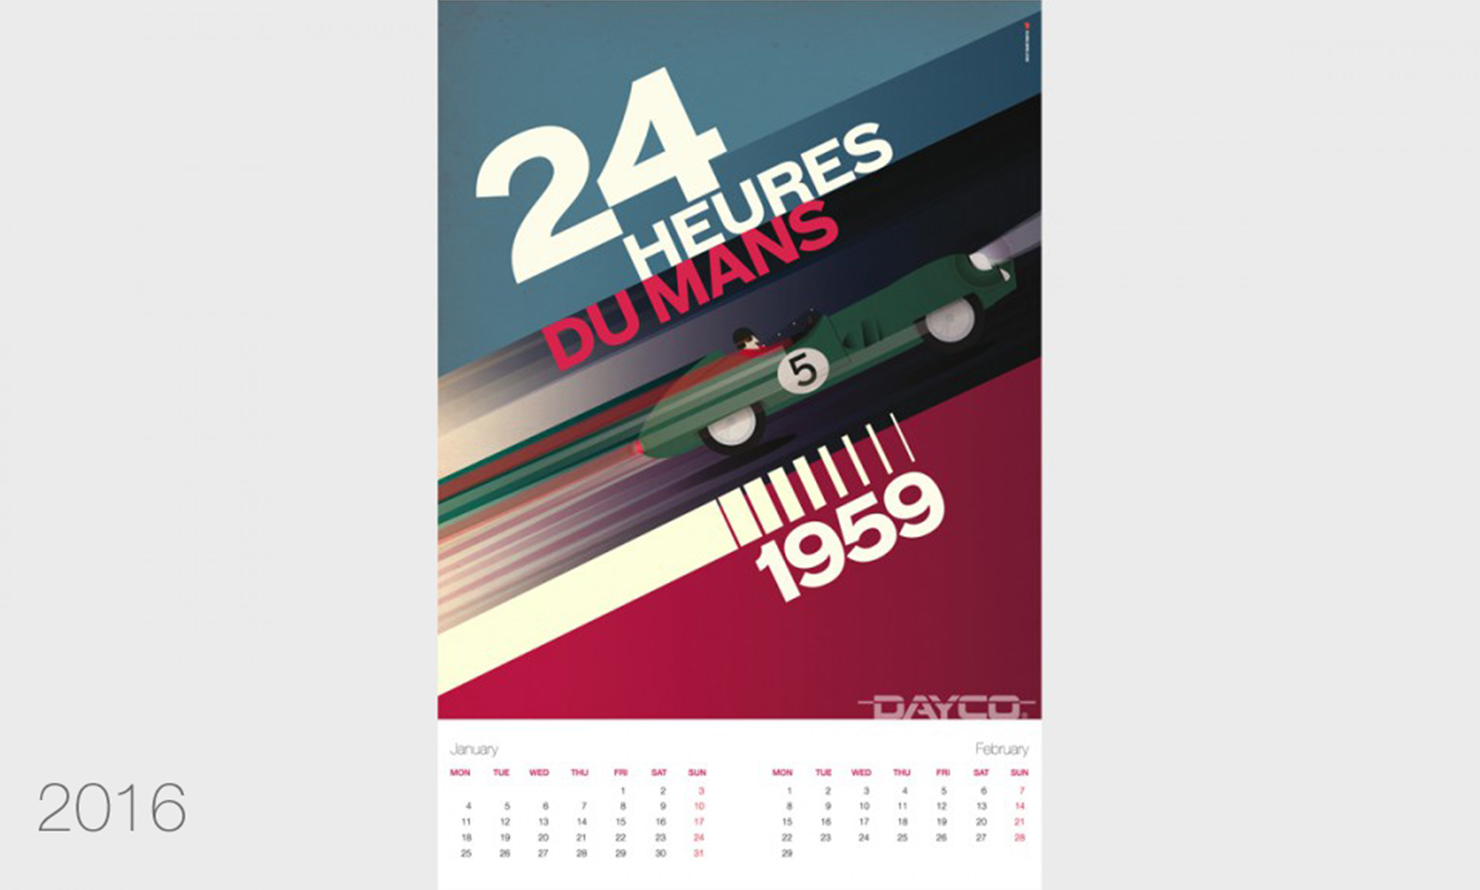 https://kubelibre.com/uploads/Slider-work-tutti-clienti/dayco-calendario-2016-1.jpg